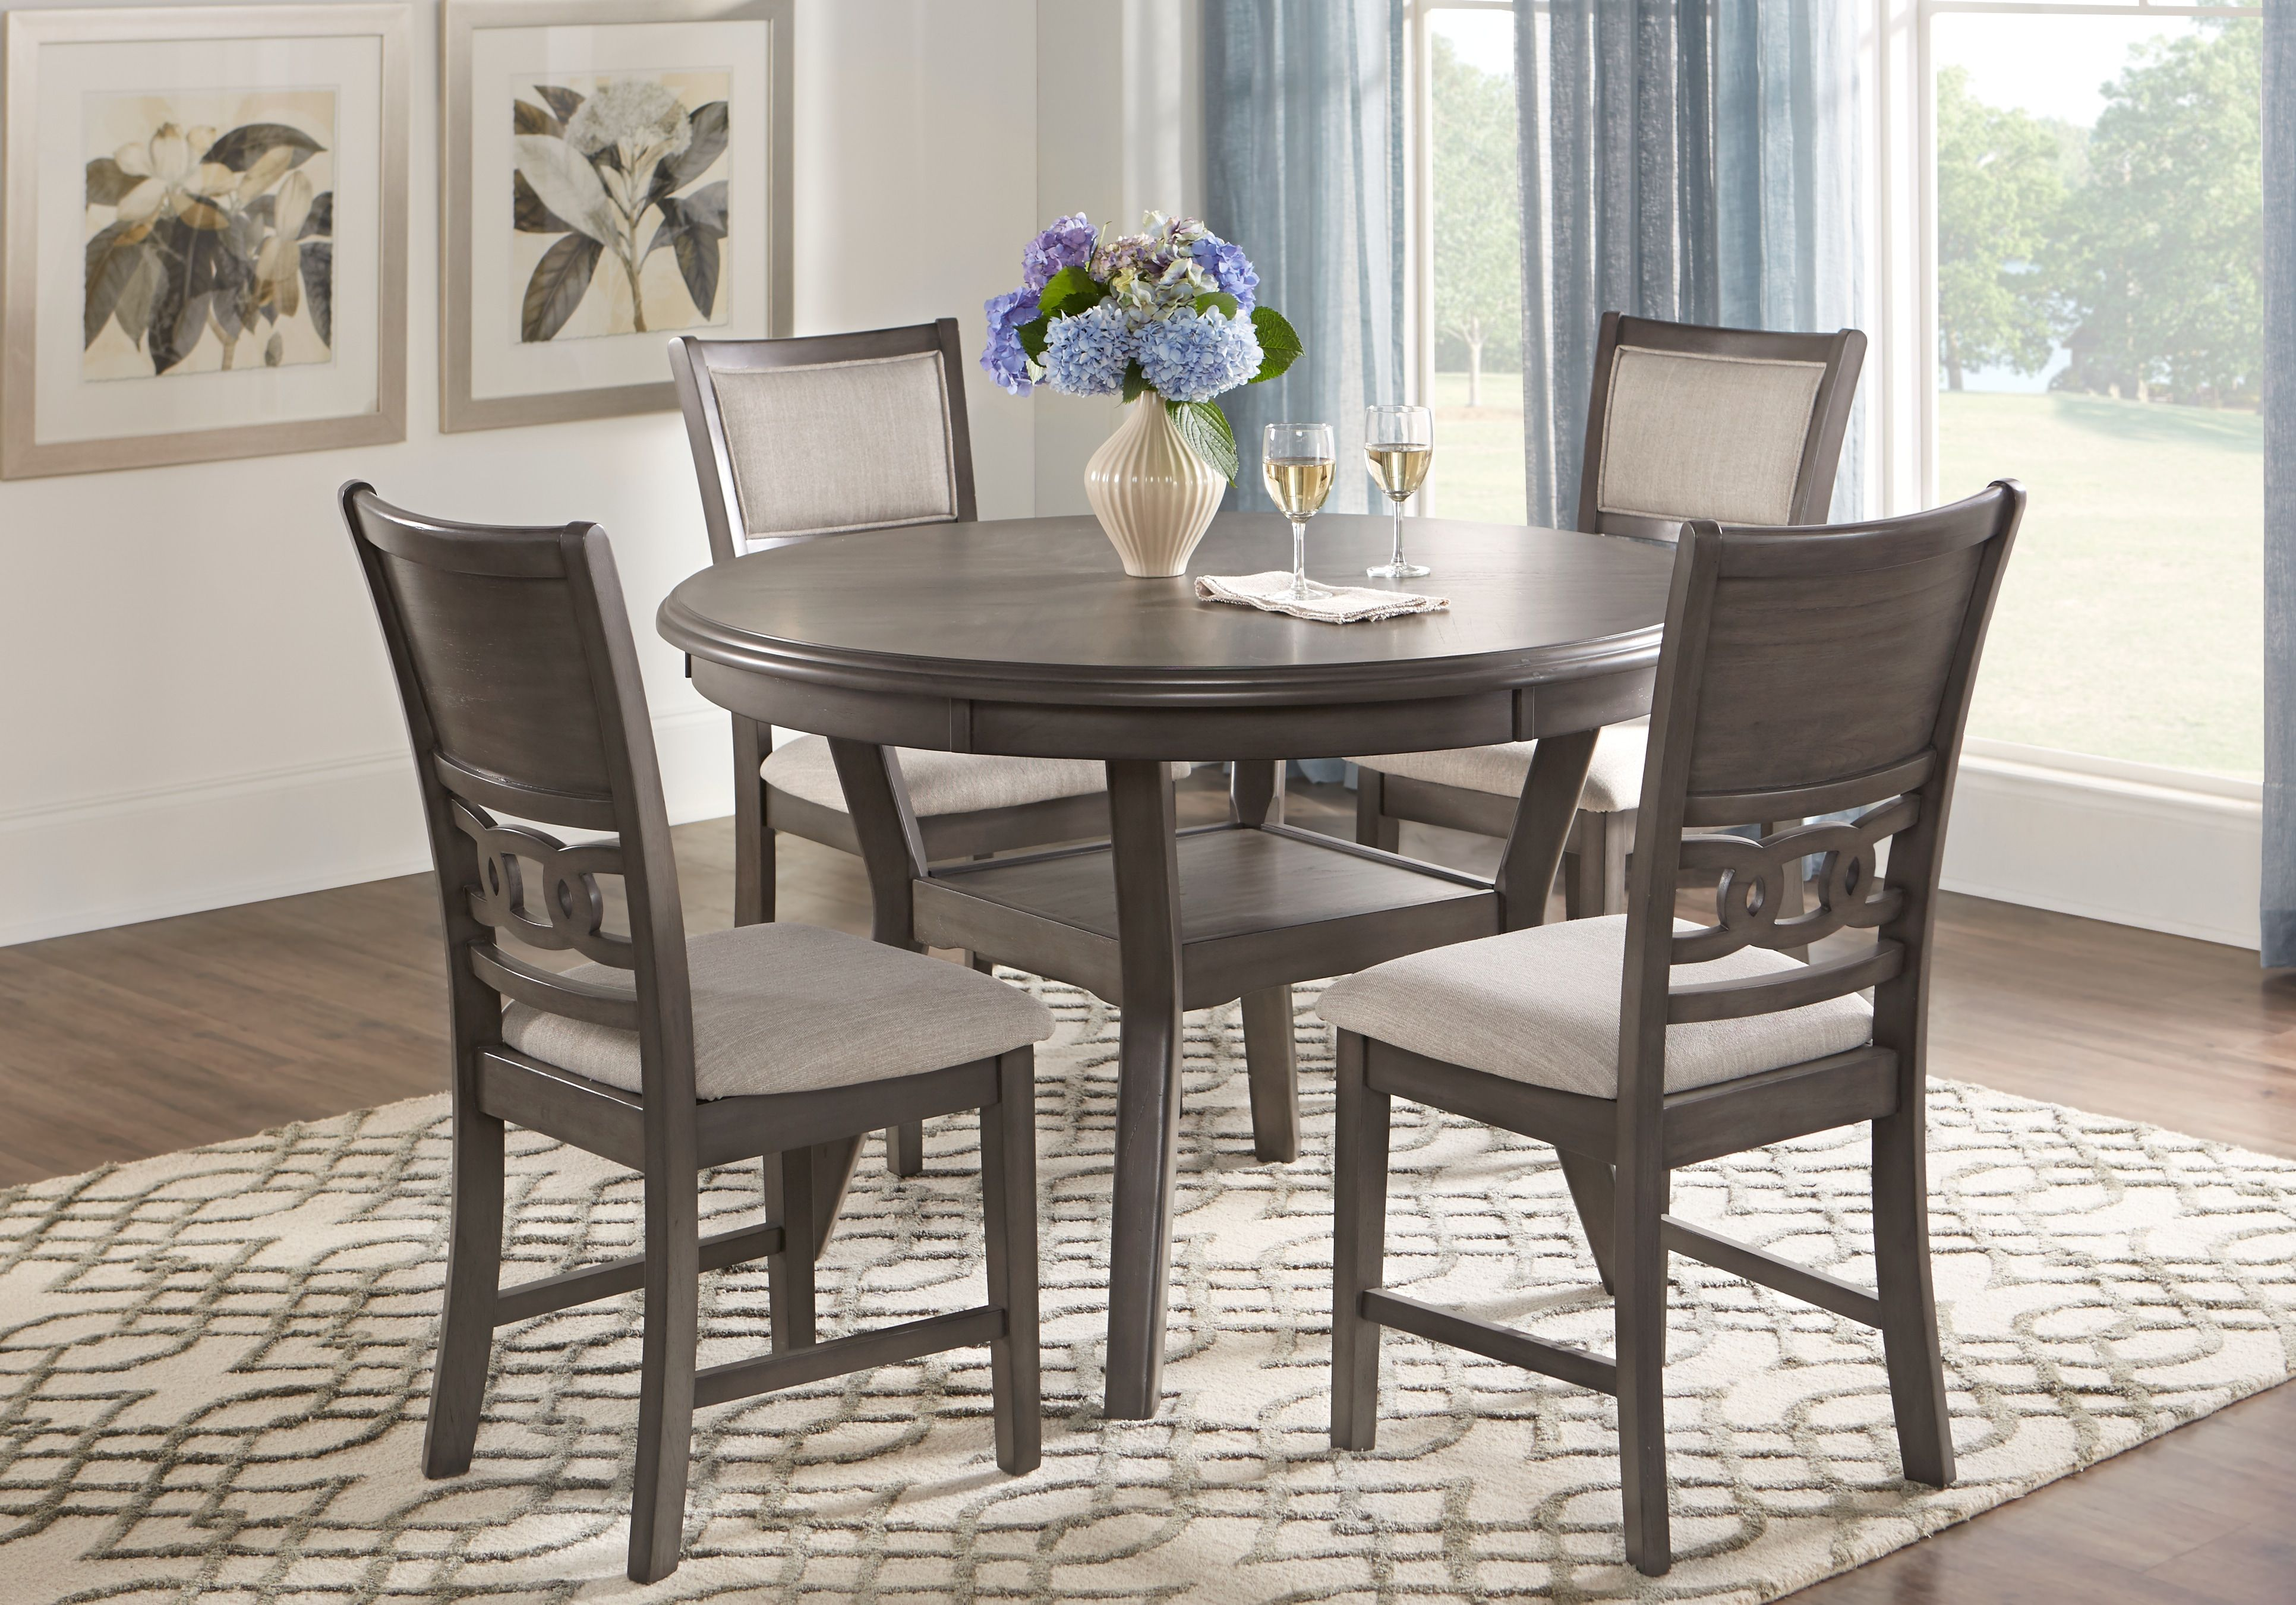 Pin On Grey Tables Chairs Good Price